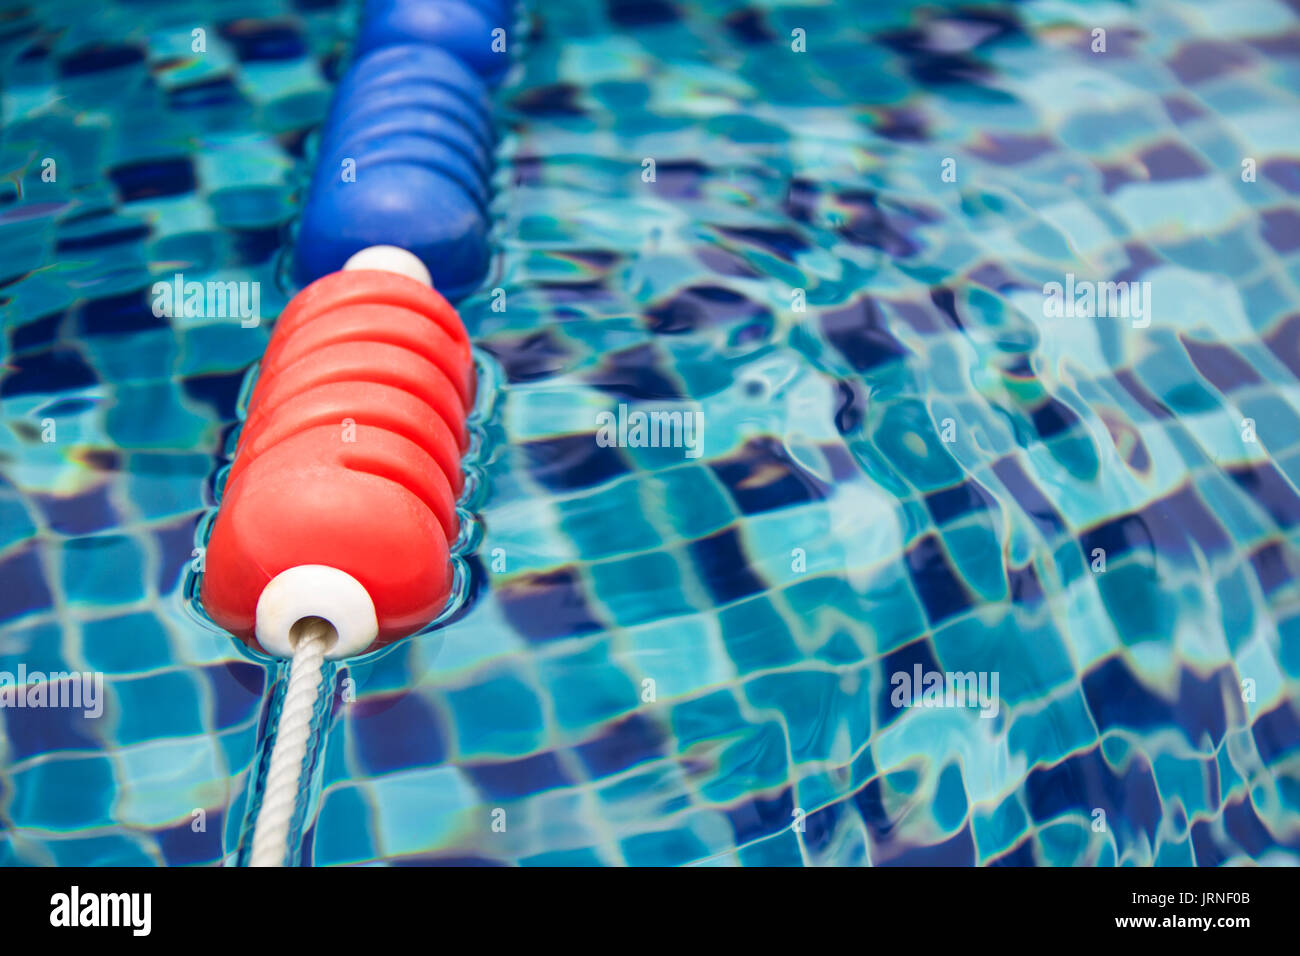 Blue and red colors plastic swimming pool lane divider and rope floating on water surface - Stock Image